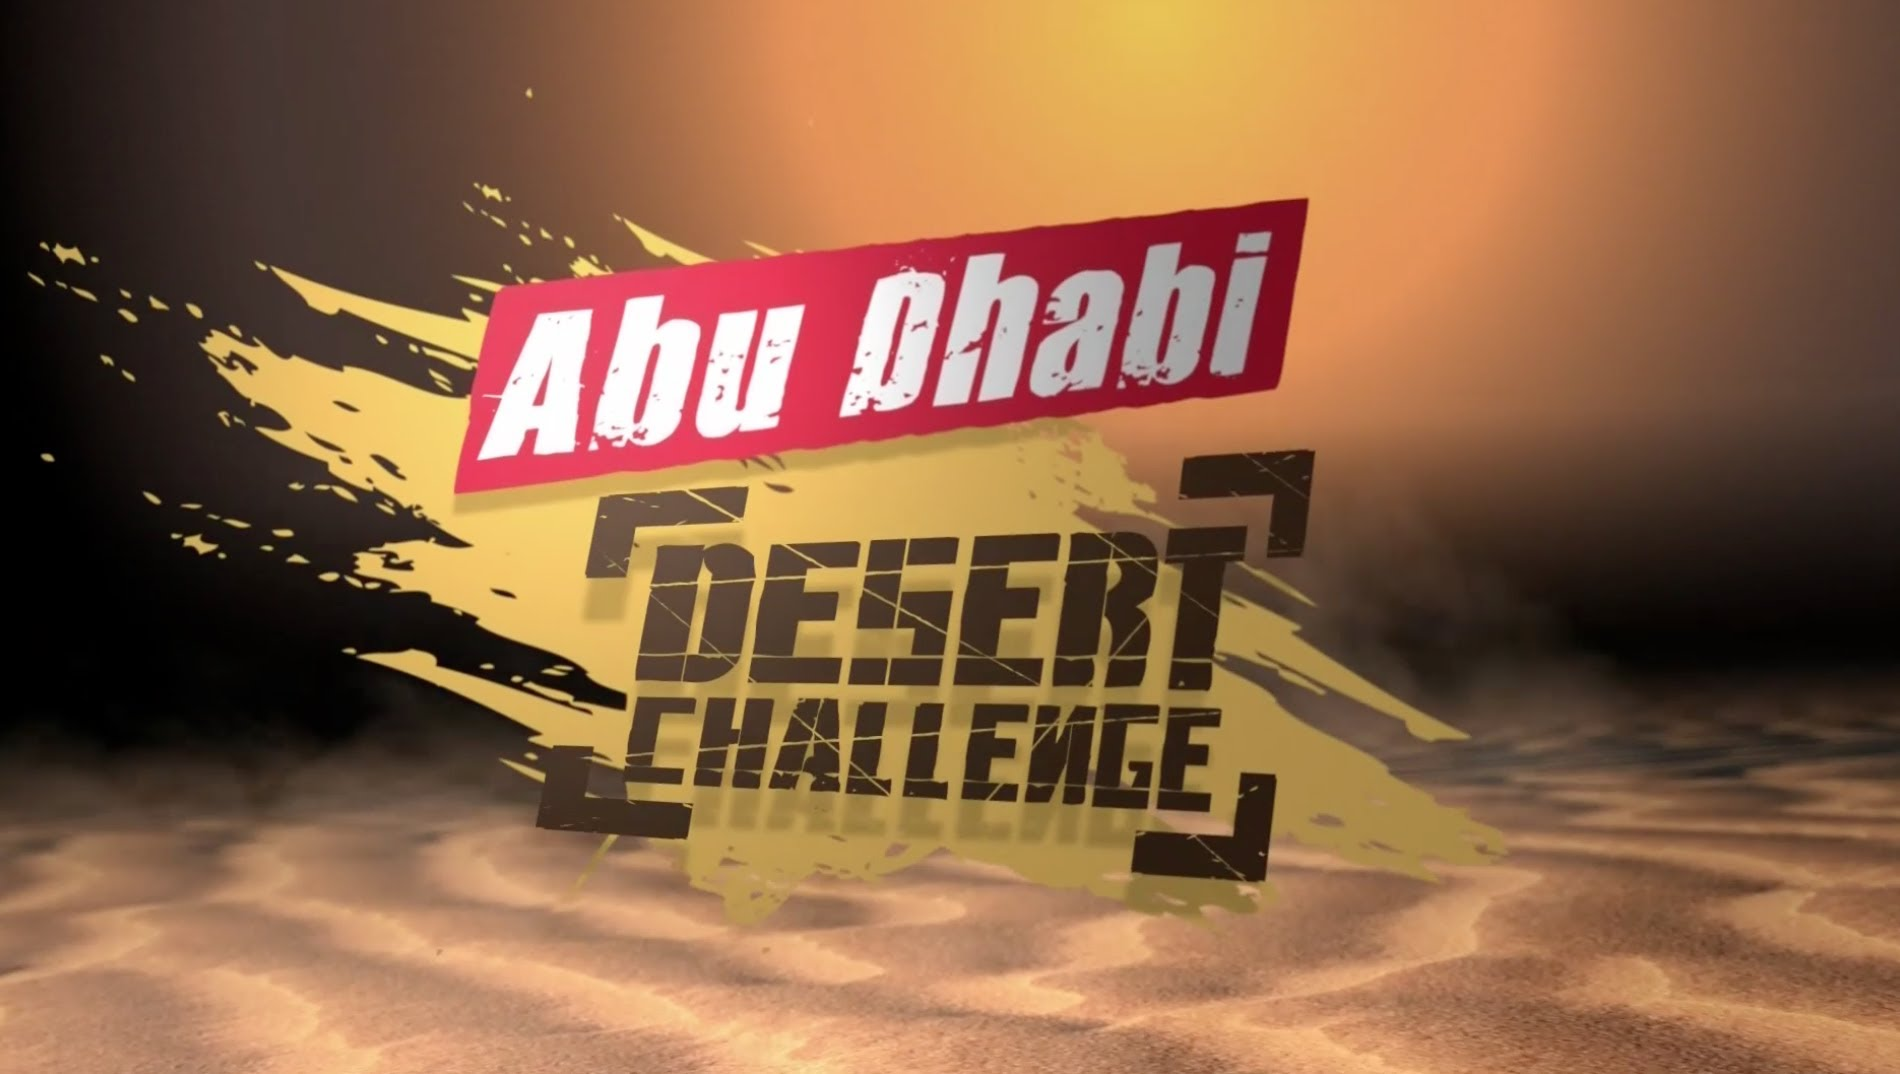 world's top rally driversto compete in abu dhabi desert challenge